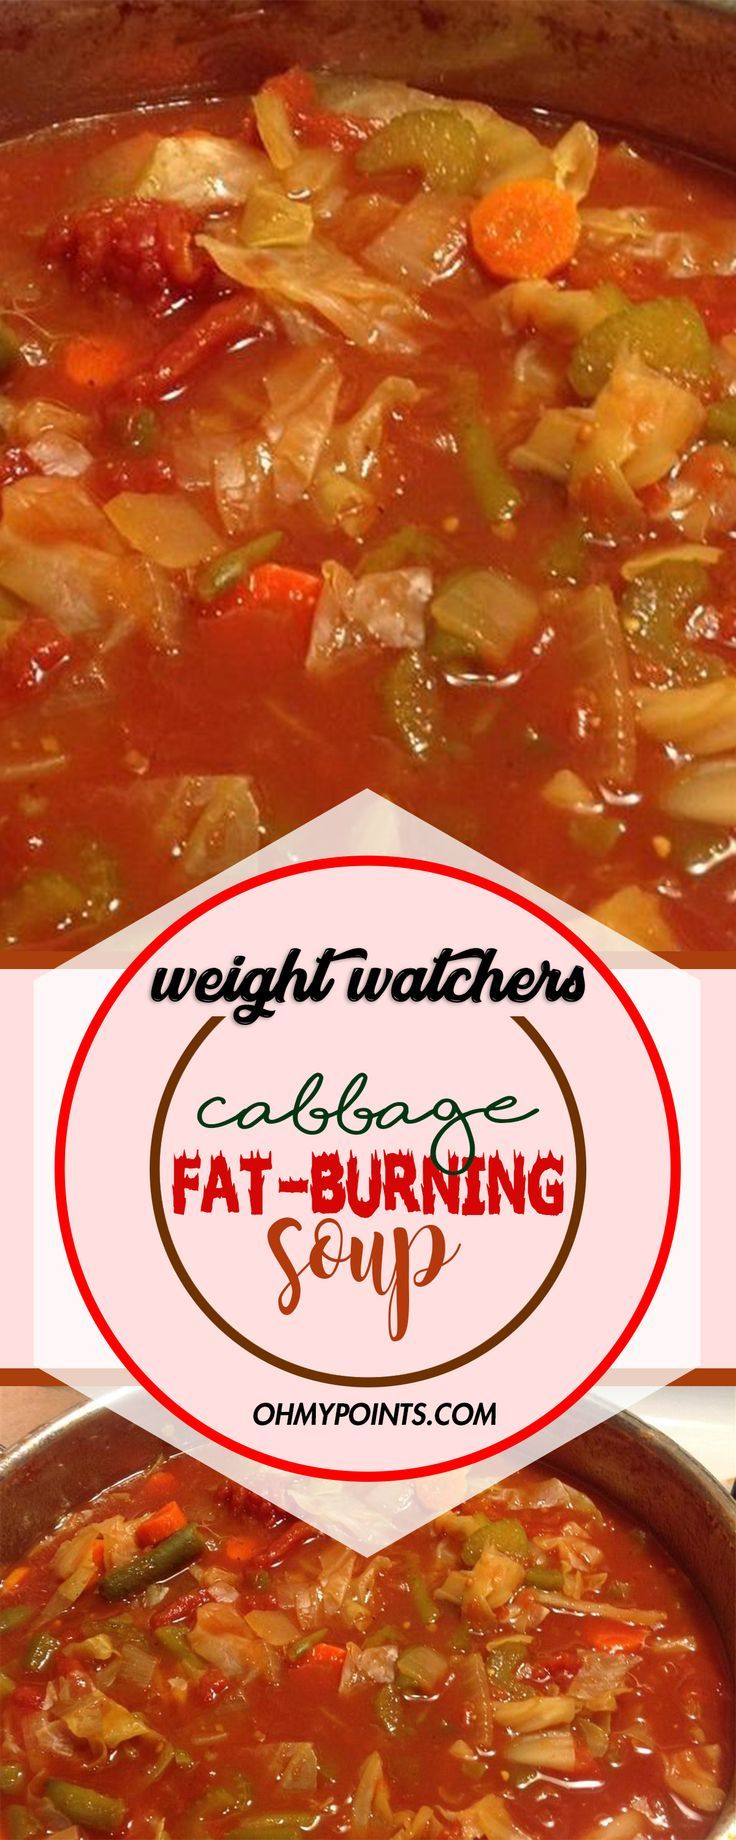 Cabbage Fat-burning Soup #weightwatchers #weight_watchers #cabbage #fat_burning …